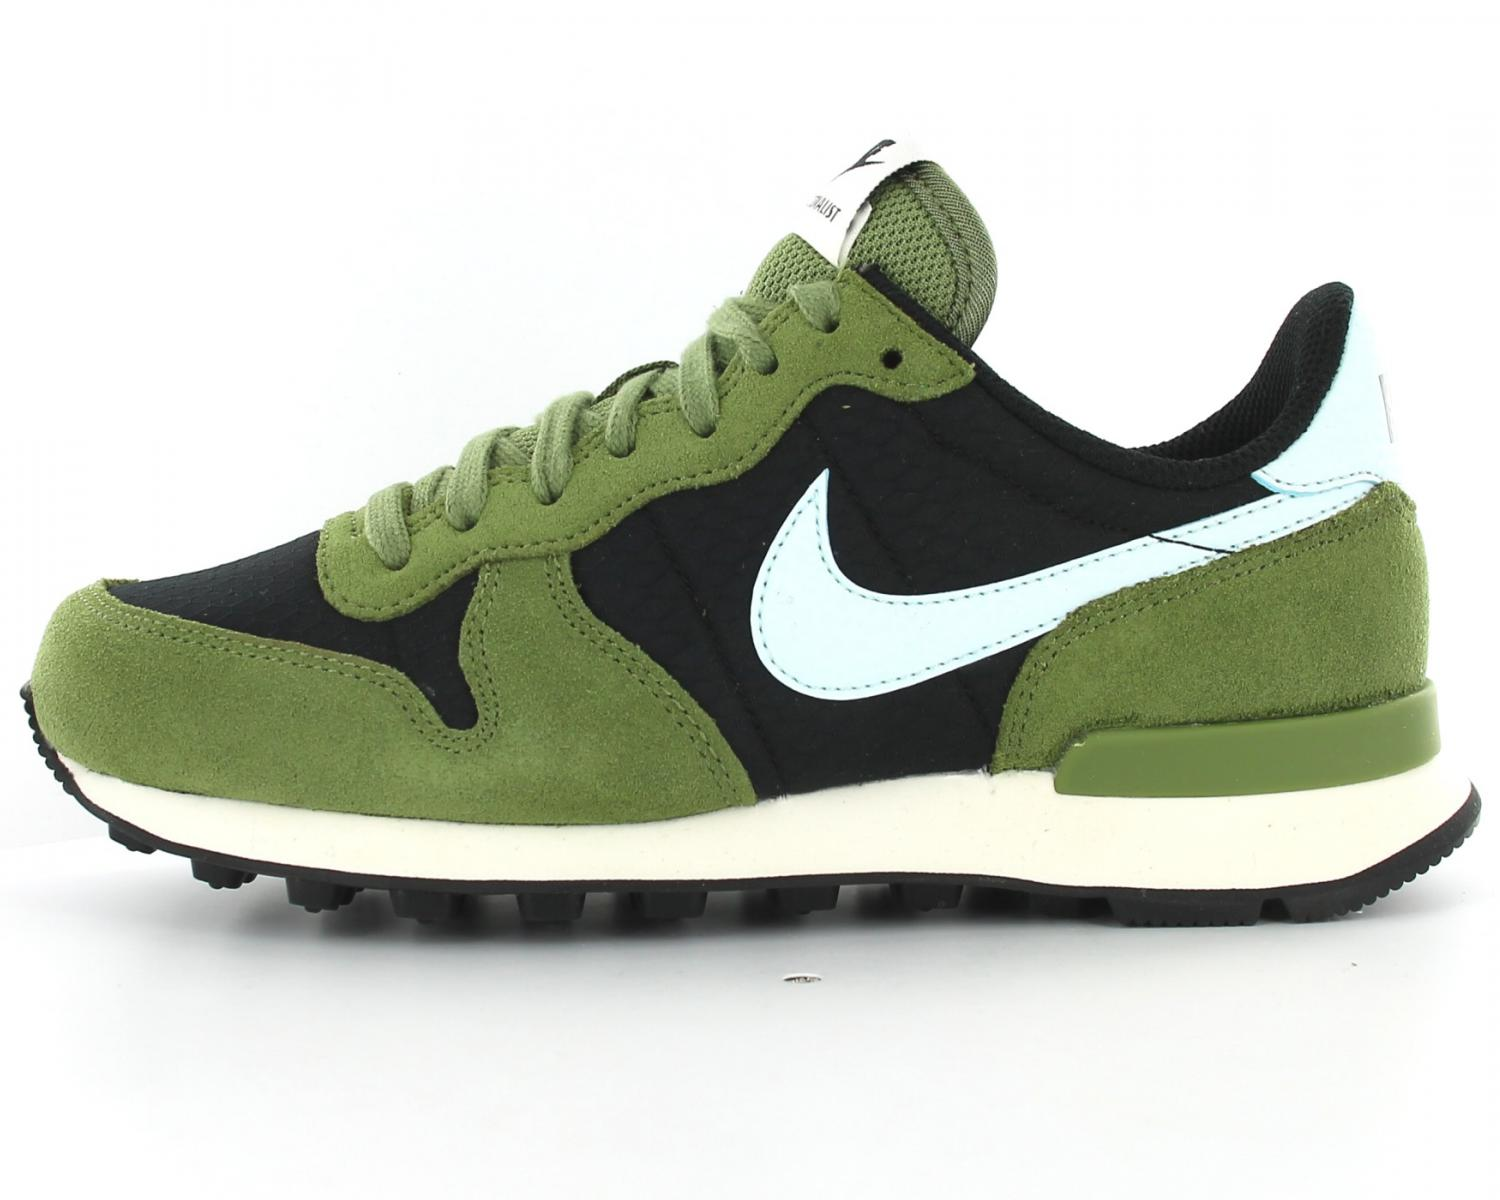 Soldes nike internationalist femme en france 206